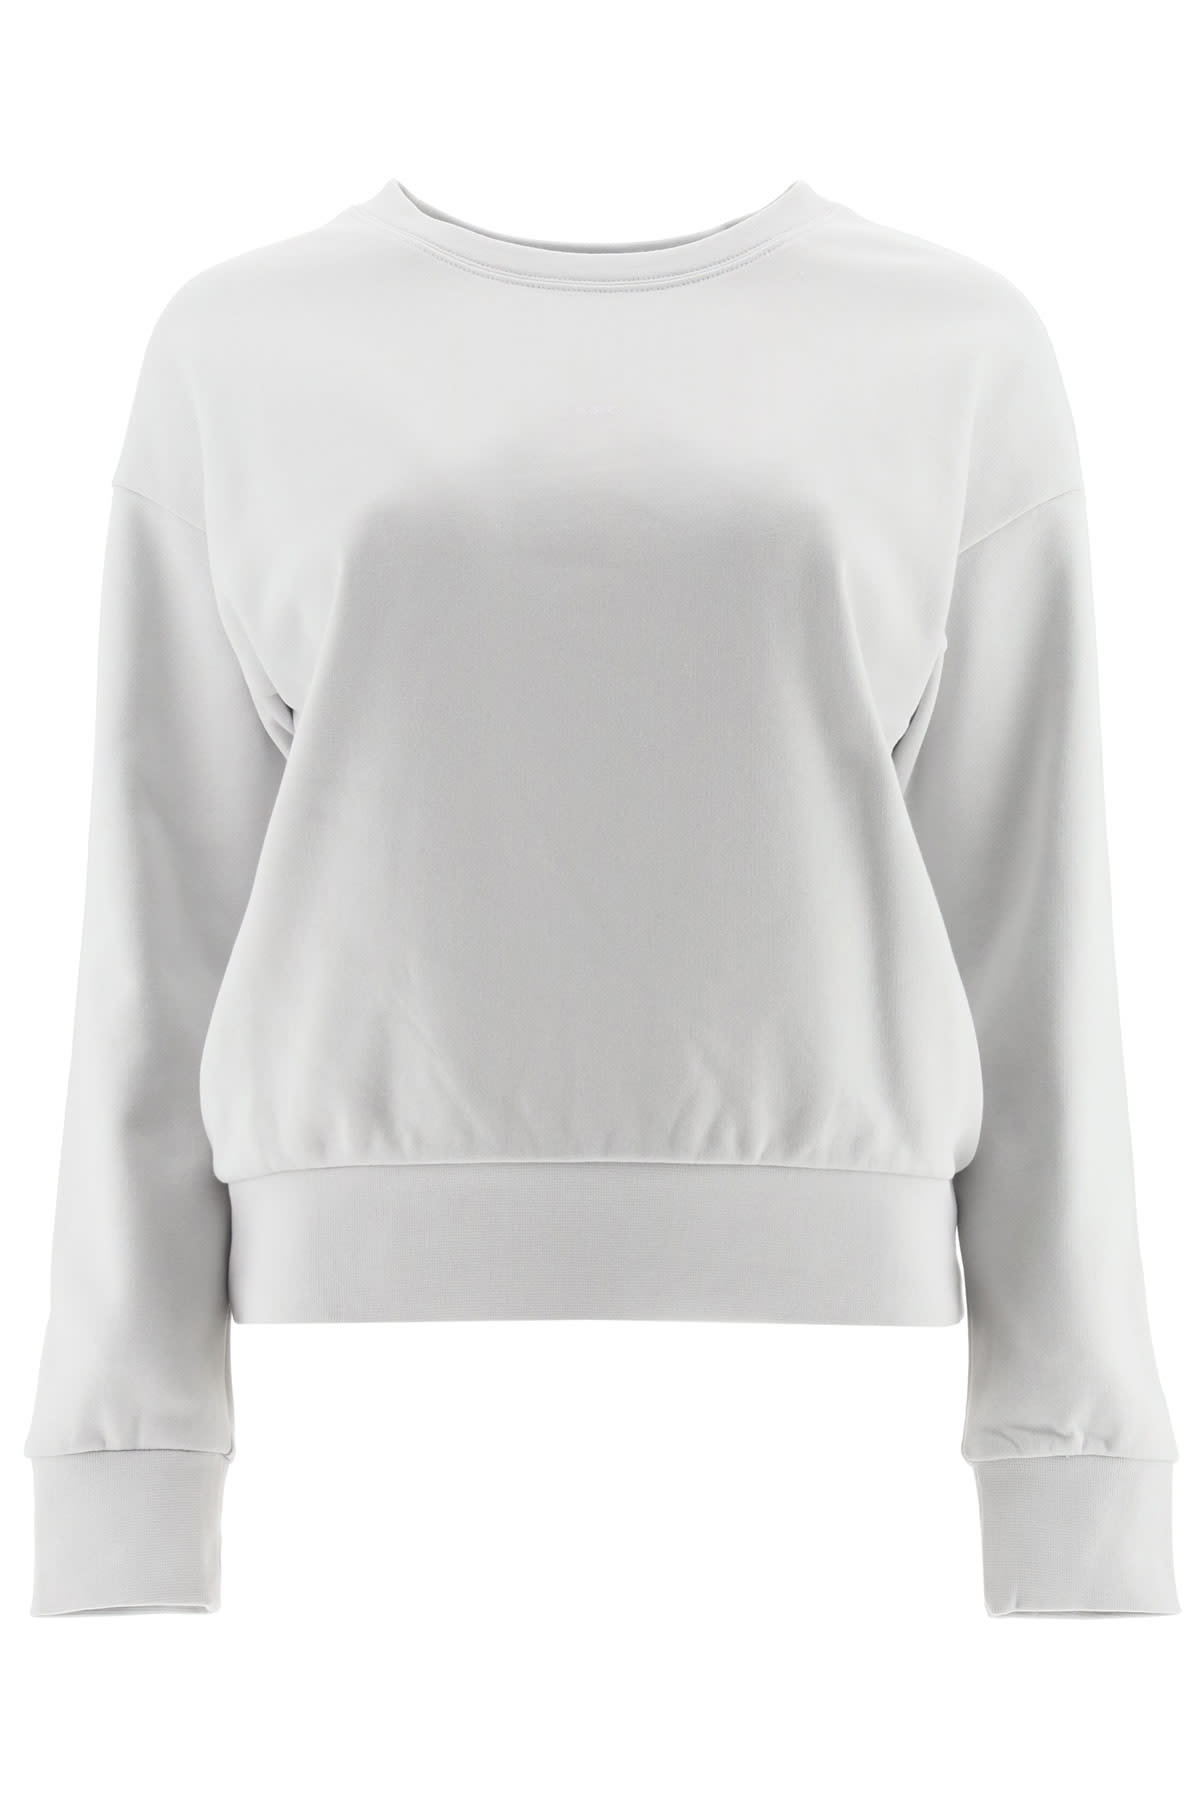 A.p.c. ANNIE SWEATSHIRT WITH MICRO LOGO